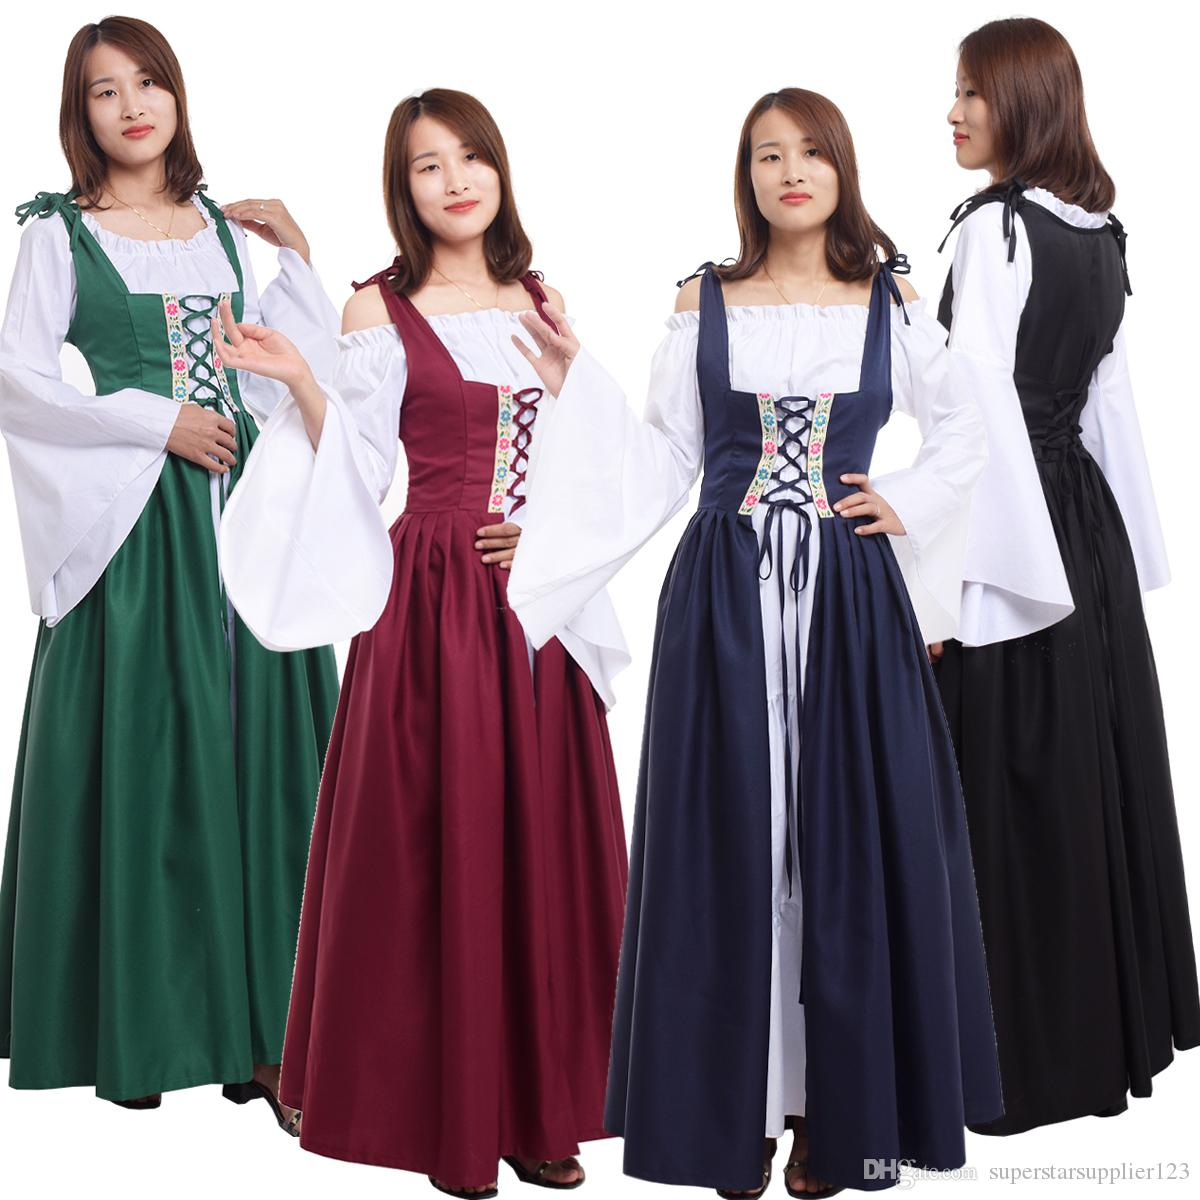 Adult Renaissance Dresses Gowns For Women Medieval Halloween Party Irish  Victorian Corset Costume Cosplay Clothes Halloween Costume Group Themes  Good Halloween Themes From Superstarsupplier123, $35.68| DHgate.Com